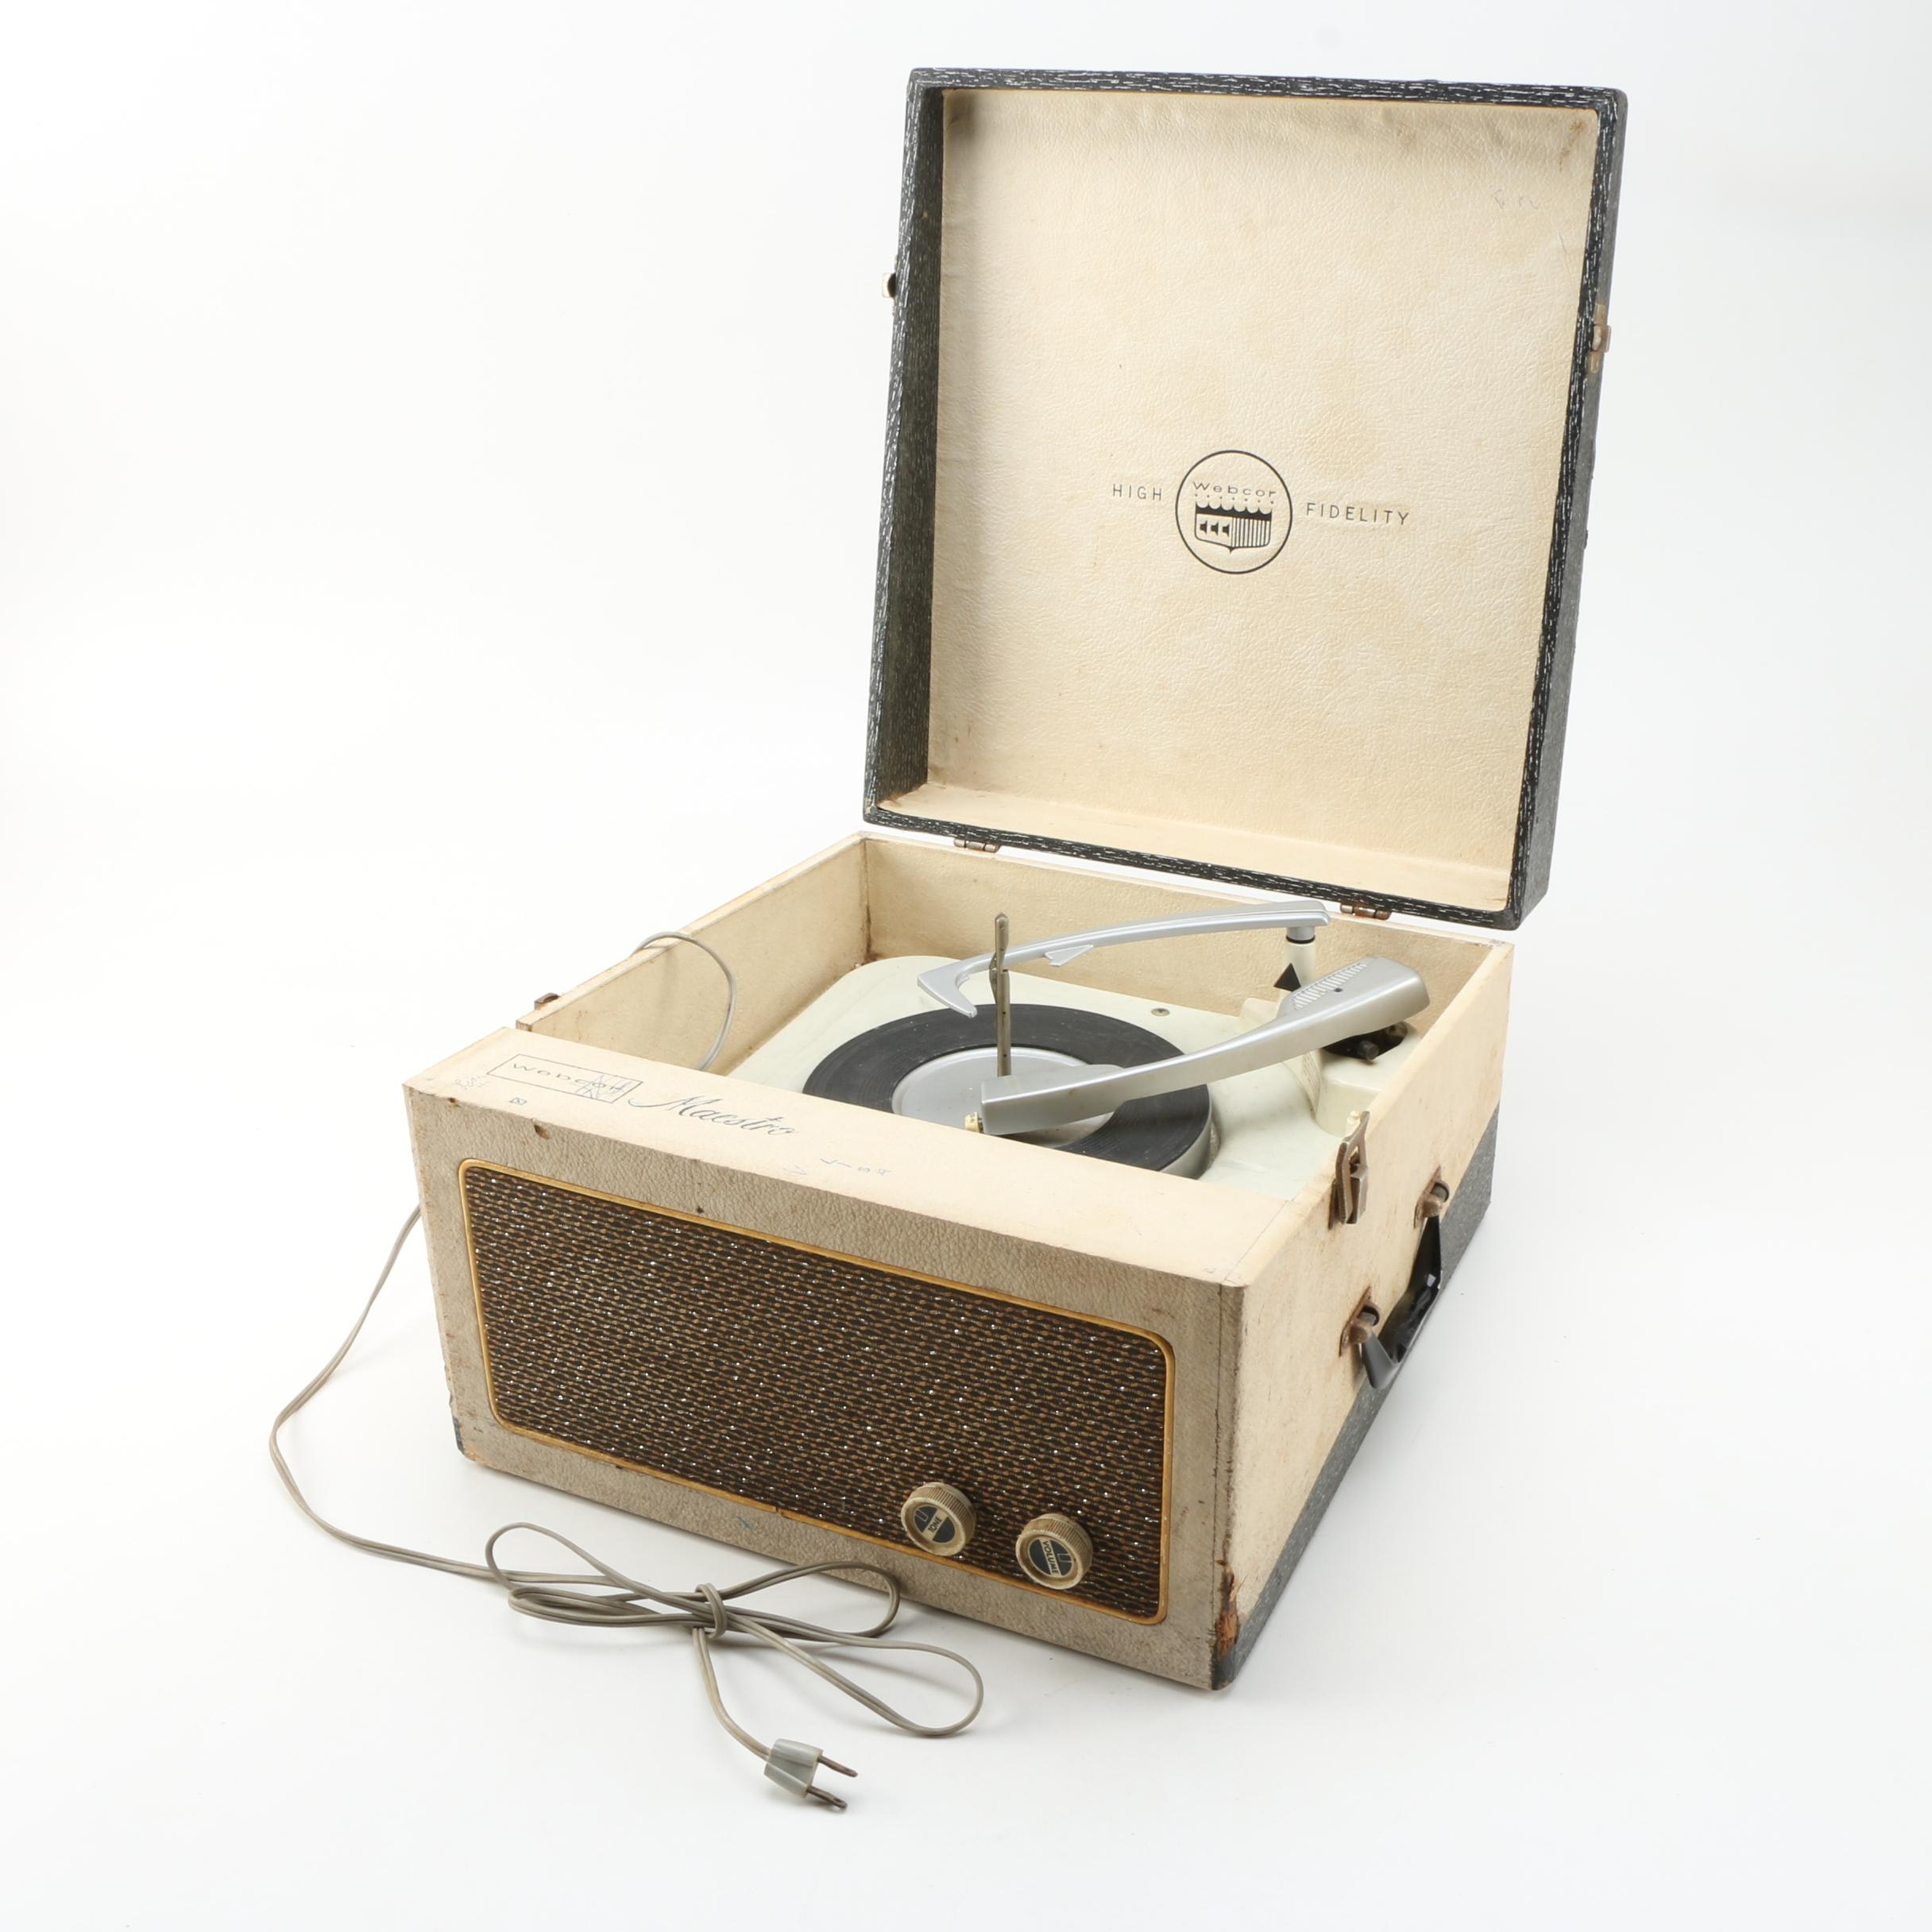 Vintage Webcor High Fidelity Record Player